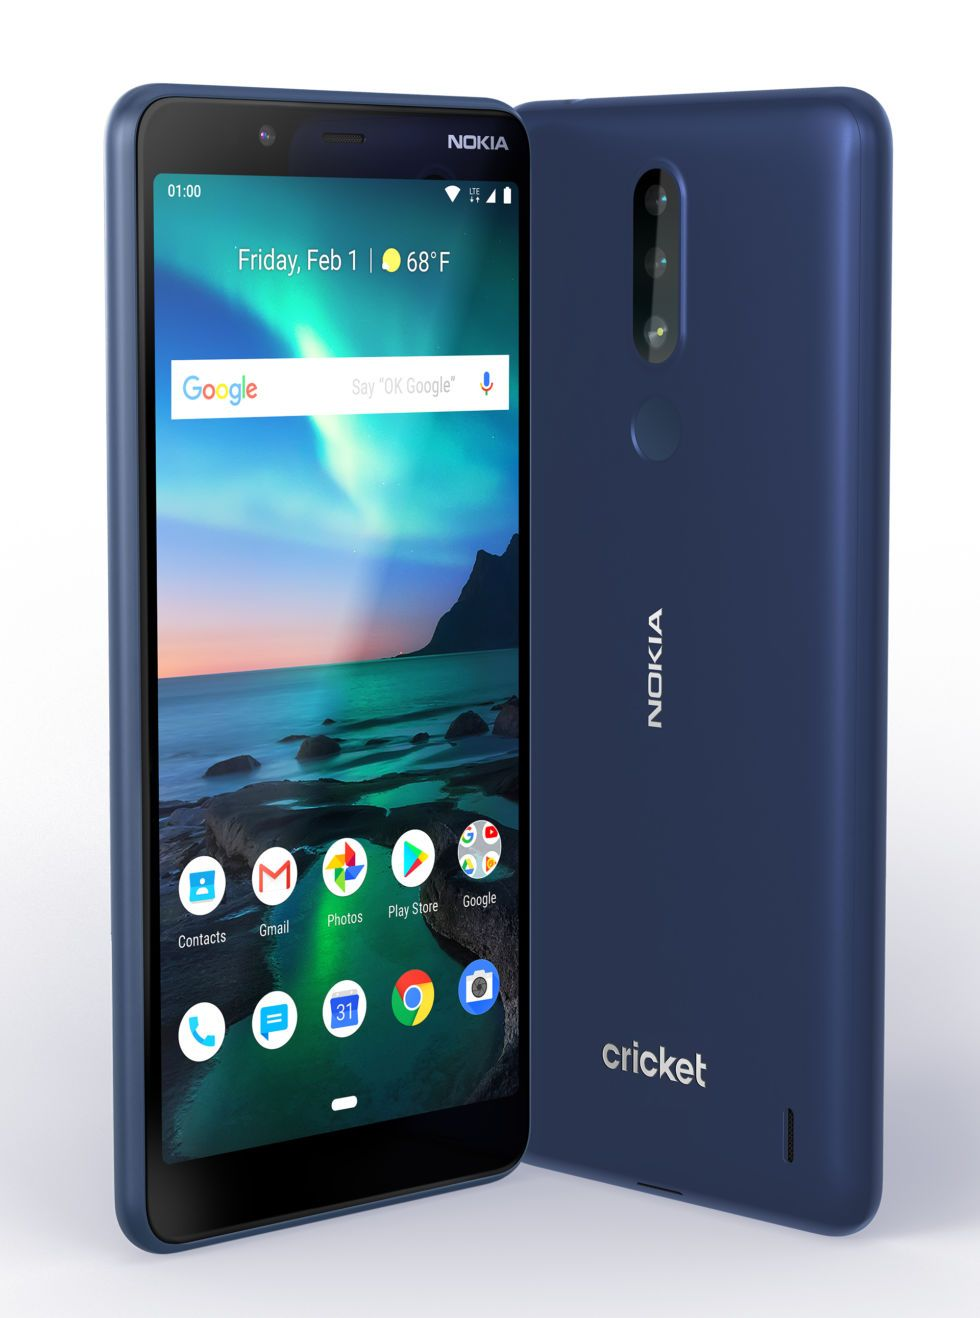 The Nokia 3 1 Plus Comes To The Us For 160 Does Entry Level Phones Right Nokia Phone Nokia Nokia 3